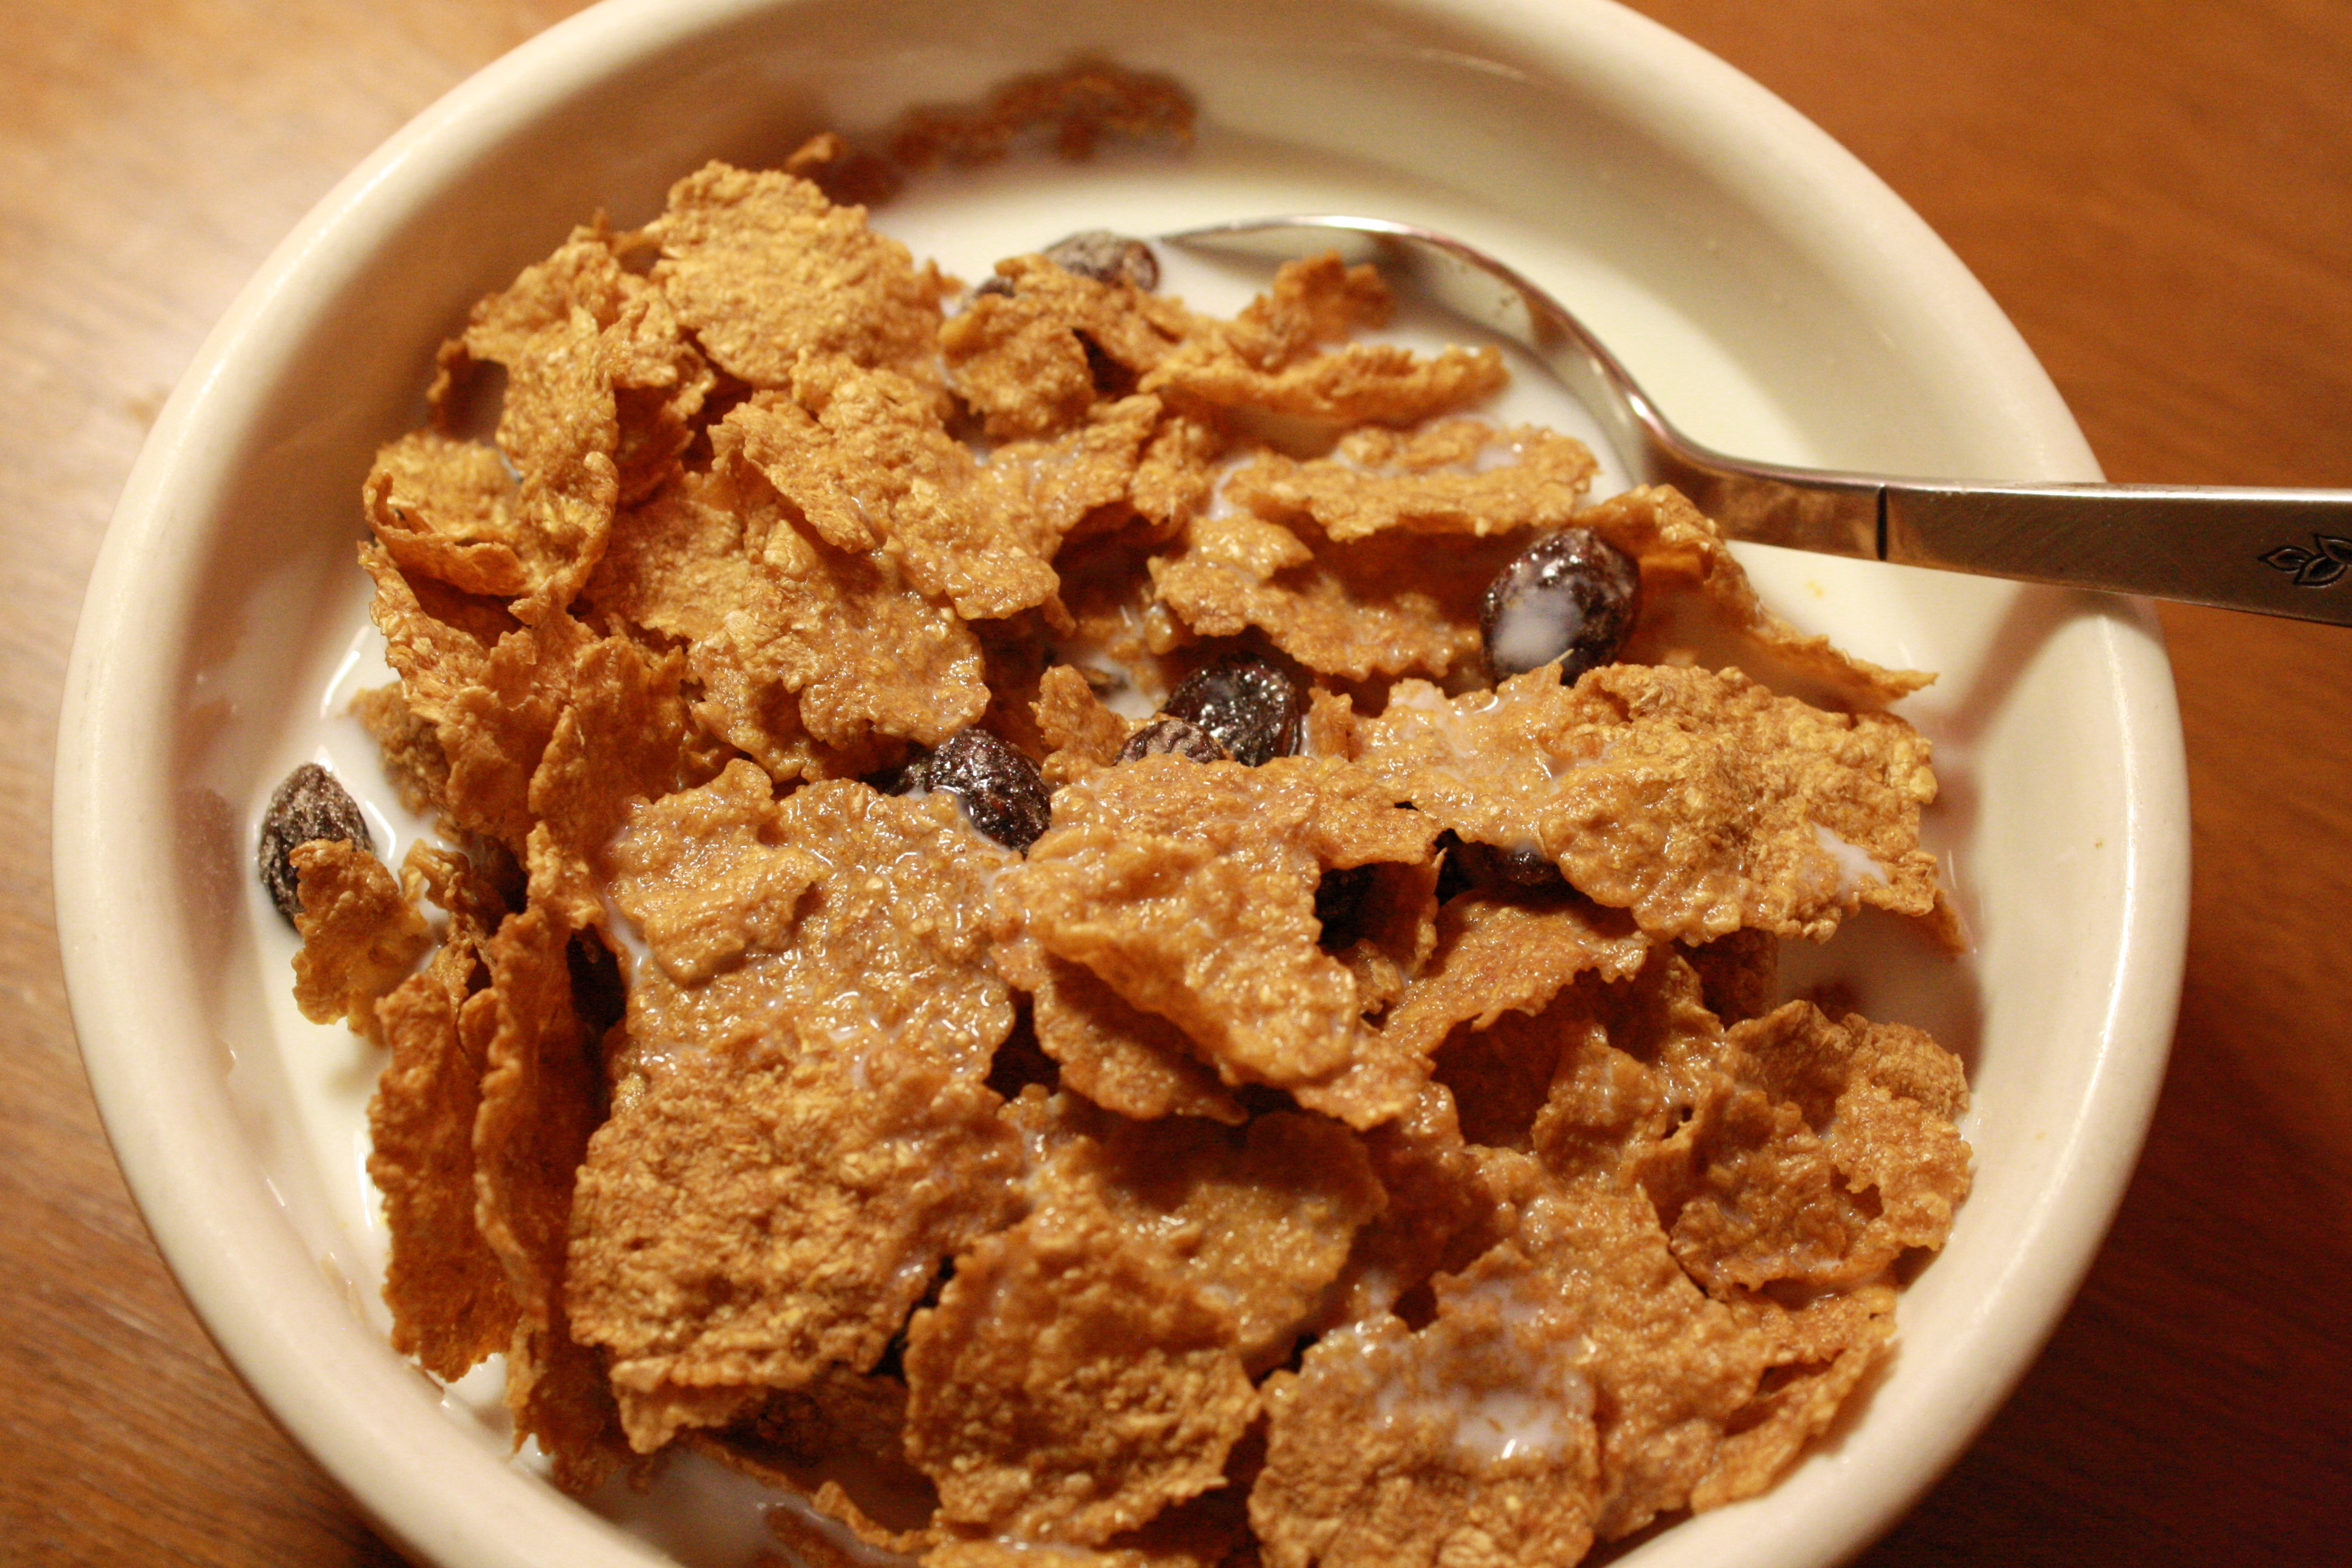 Bowl of Raisin Bran Breakfast Cereal Picture | Free ...